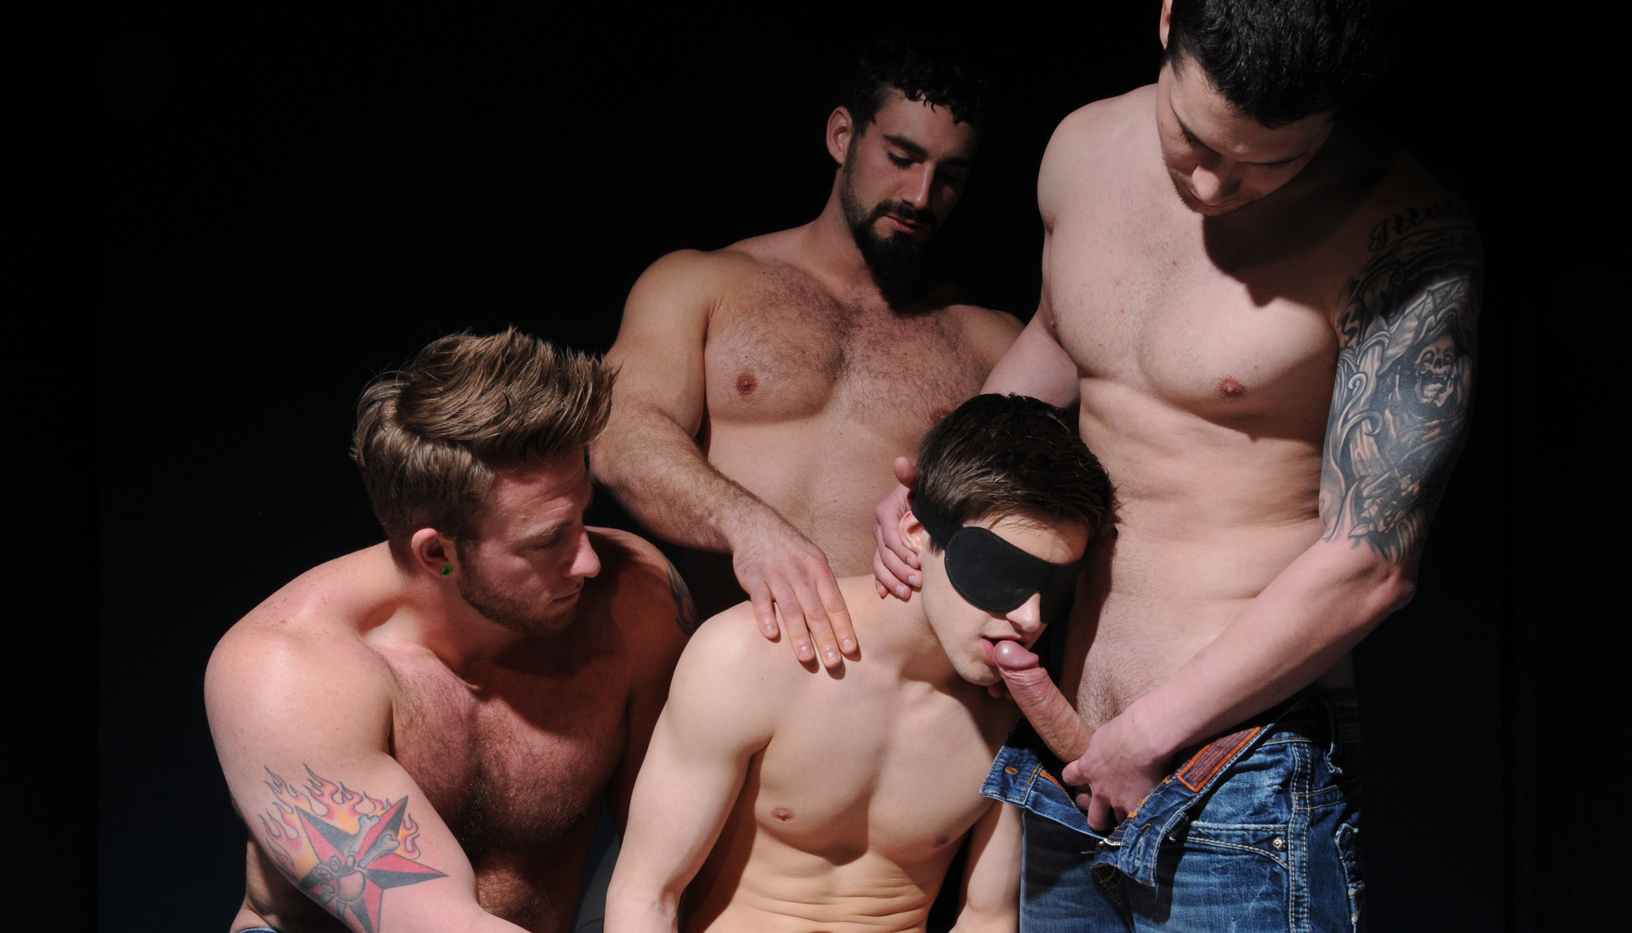 Hot Guys Cumming Inside